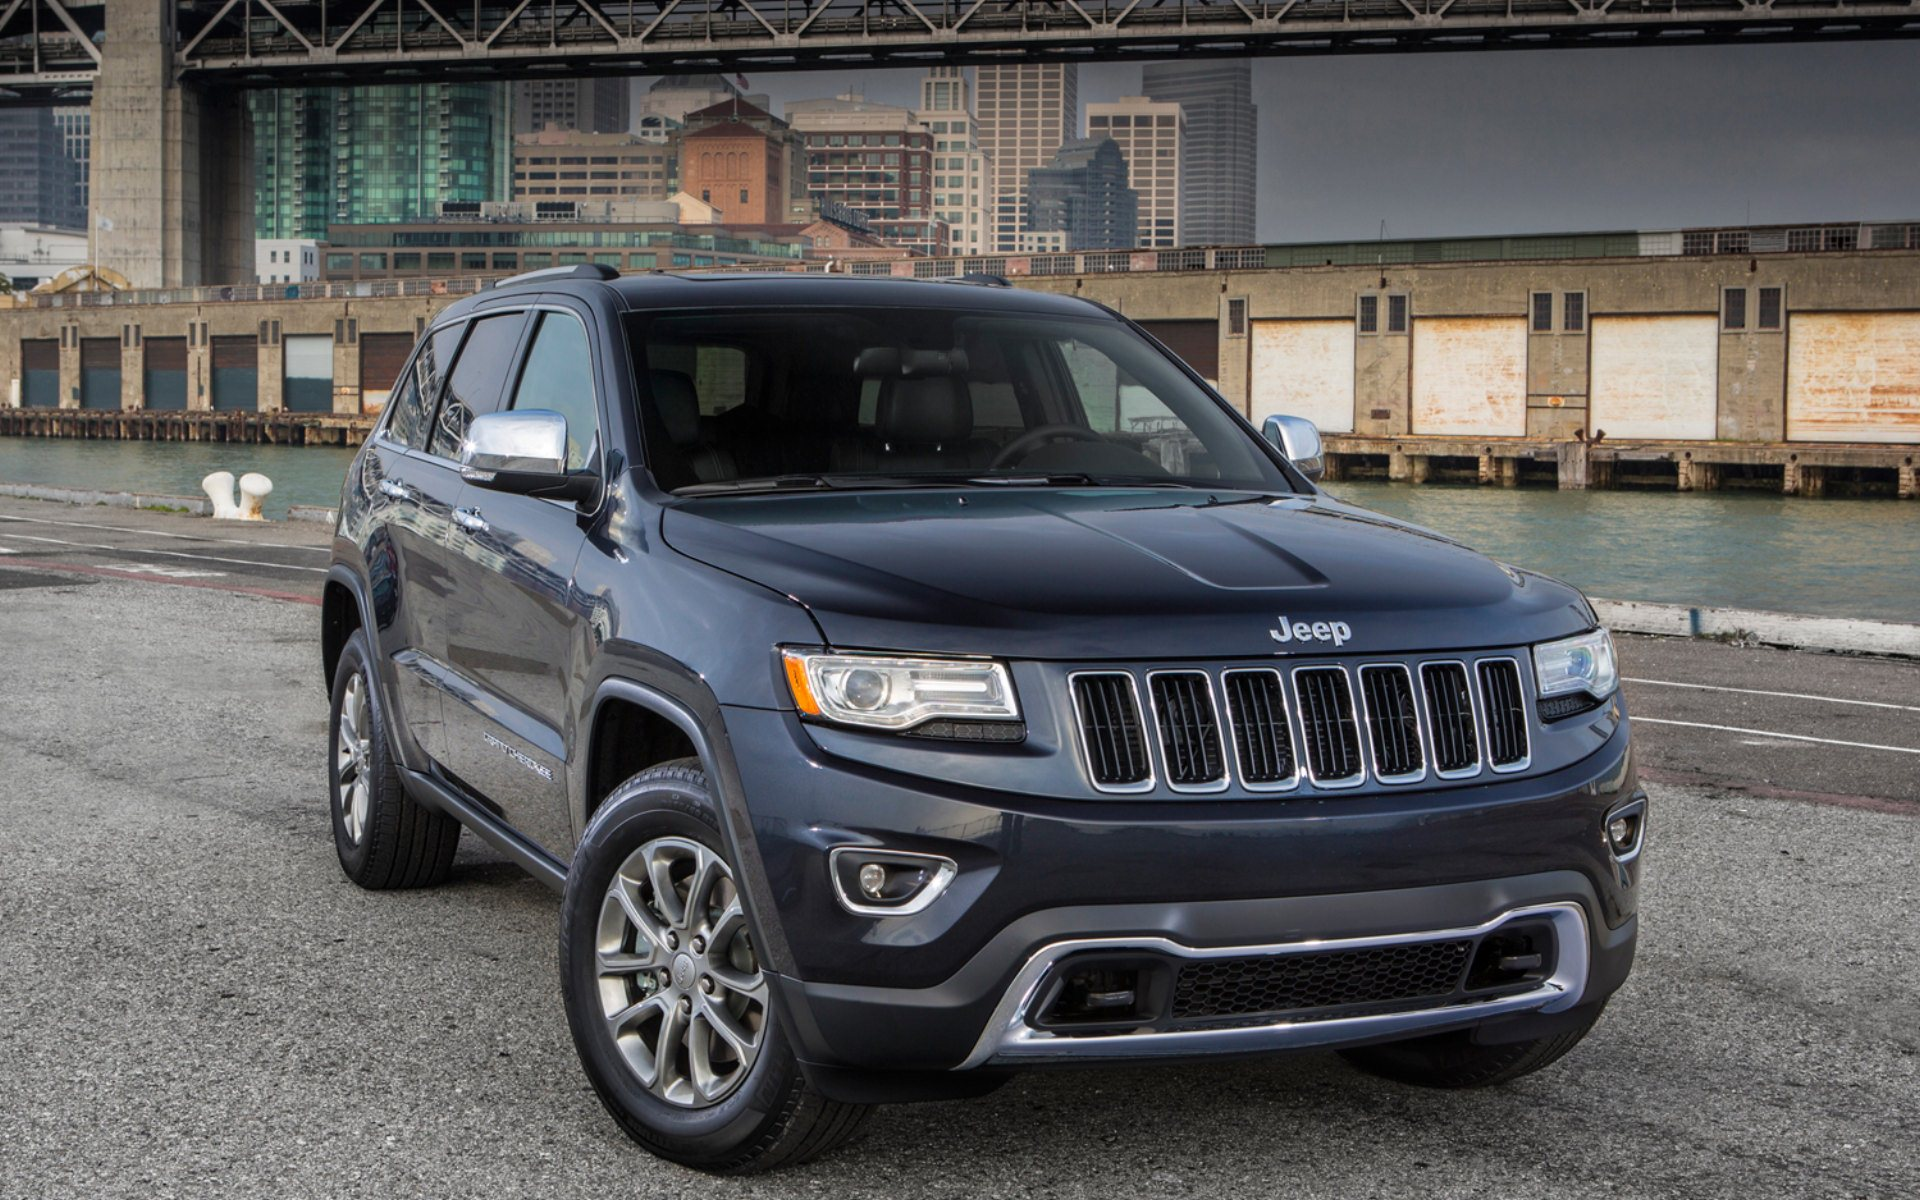 2014 Jeep Grand Cherokee Widescreen Wallpaper